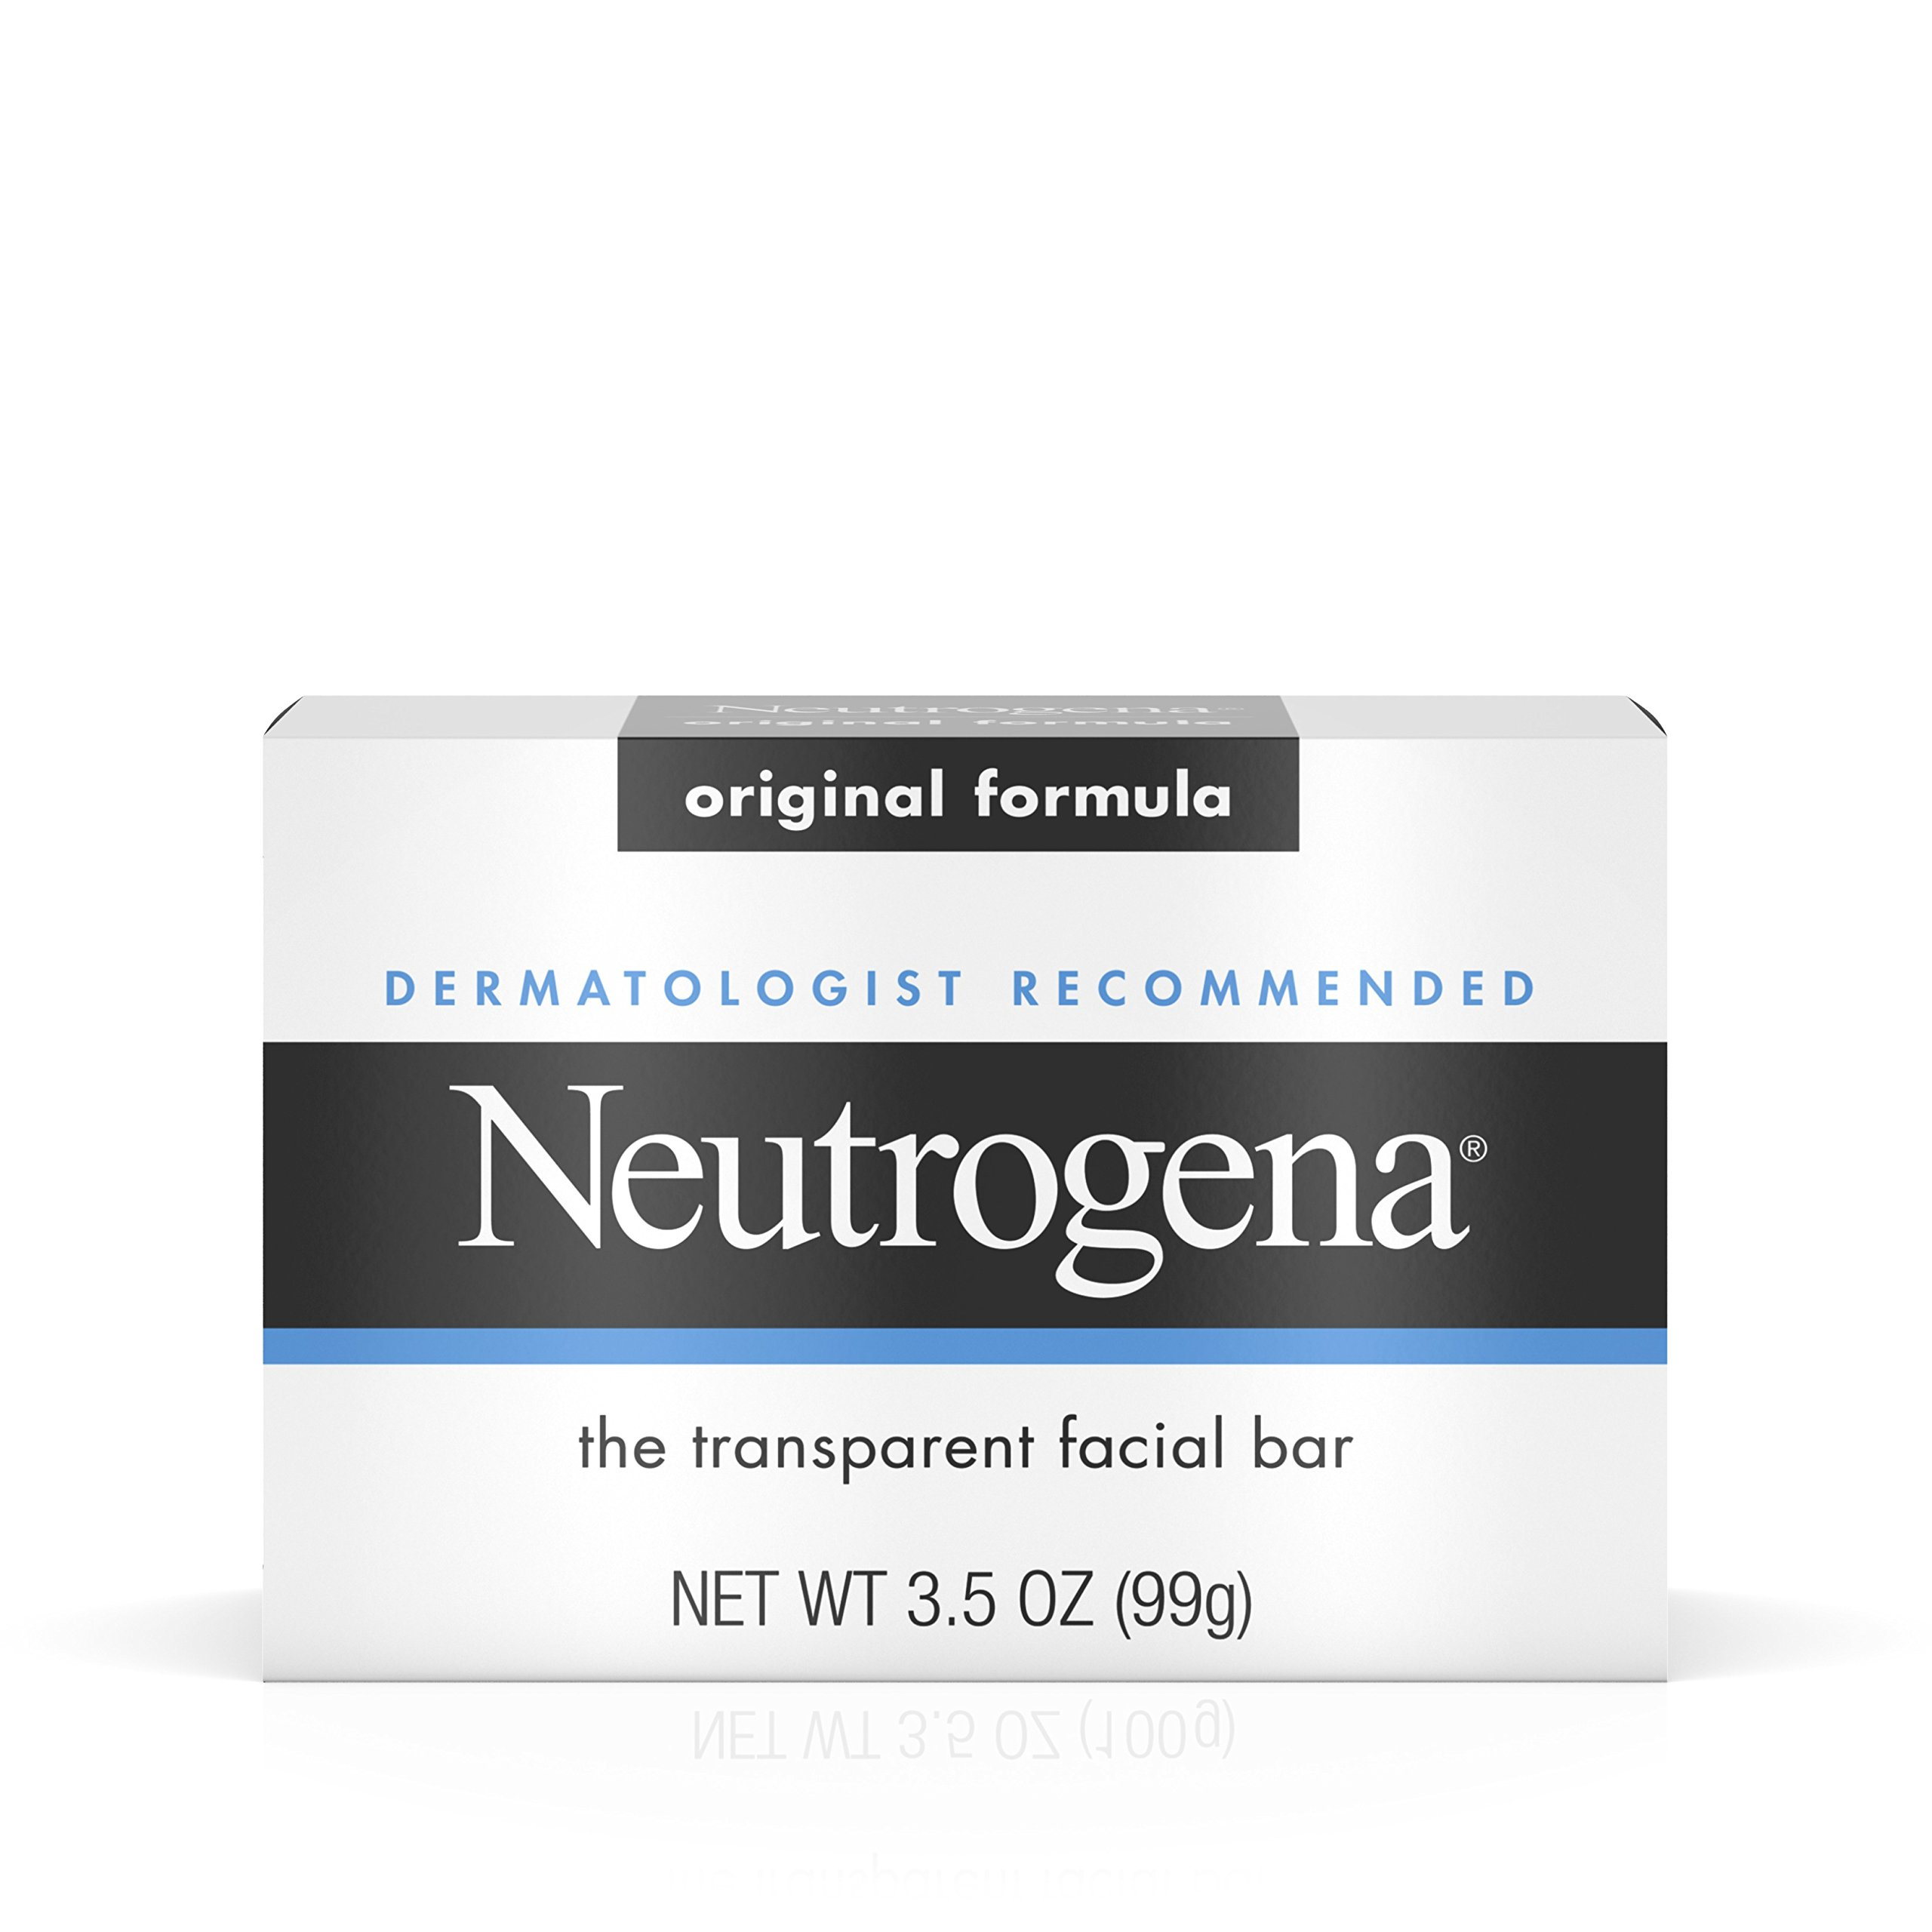 Neutrogena Original Gentle Facial Cleansing Bar with Glycerin, Pure & Transparent Face Wash Bar Soap, Free of Harsh Detergents, Dyes & Hardeners, 3.5 oz (Pack of 6) by Neutrogena